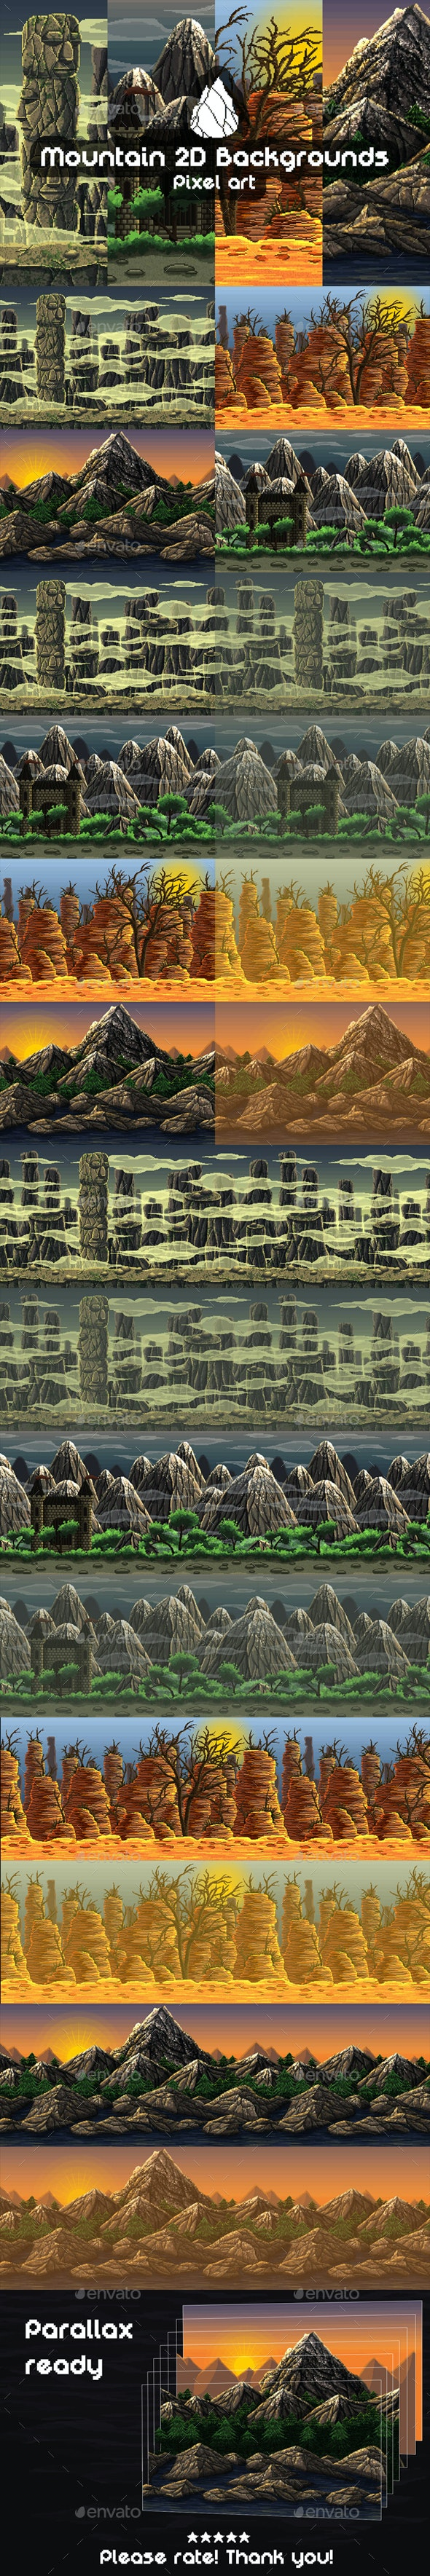 2D Game Mountain Backgrounds Pixel Art - Backgrounds Game Assets